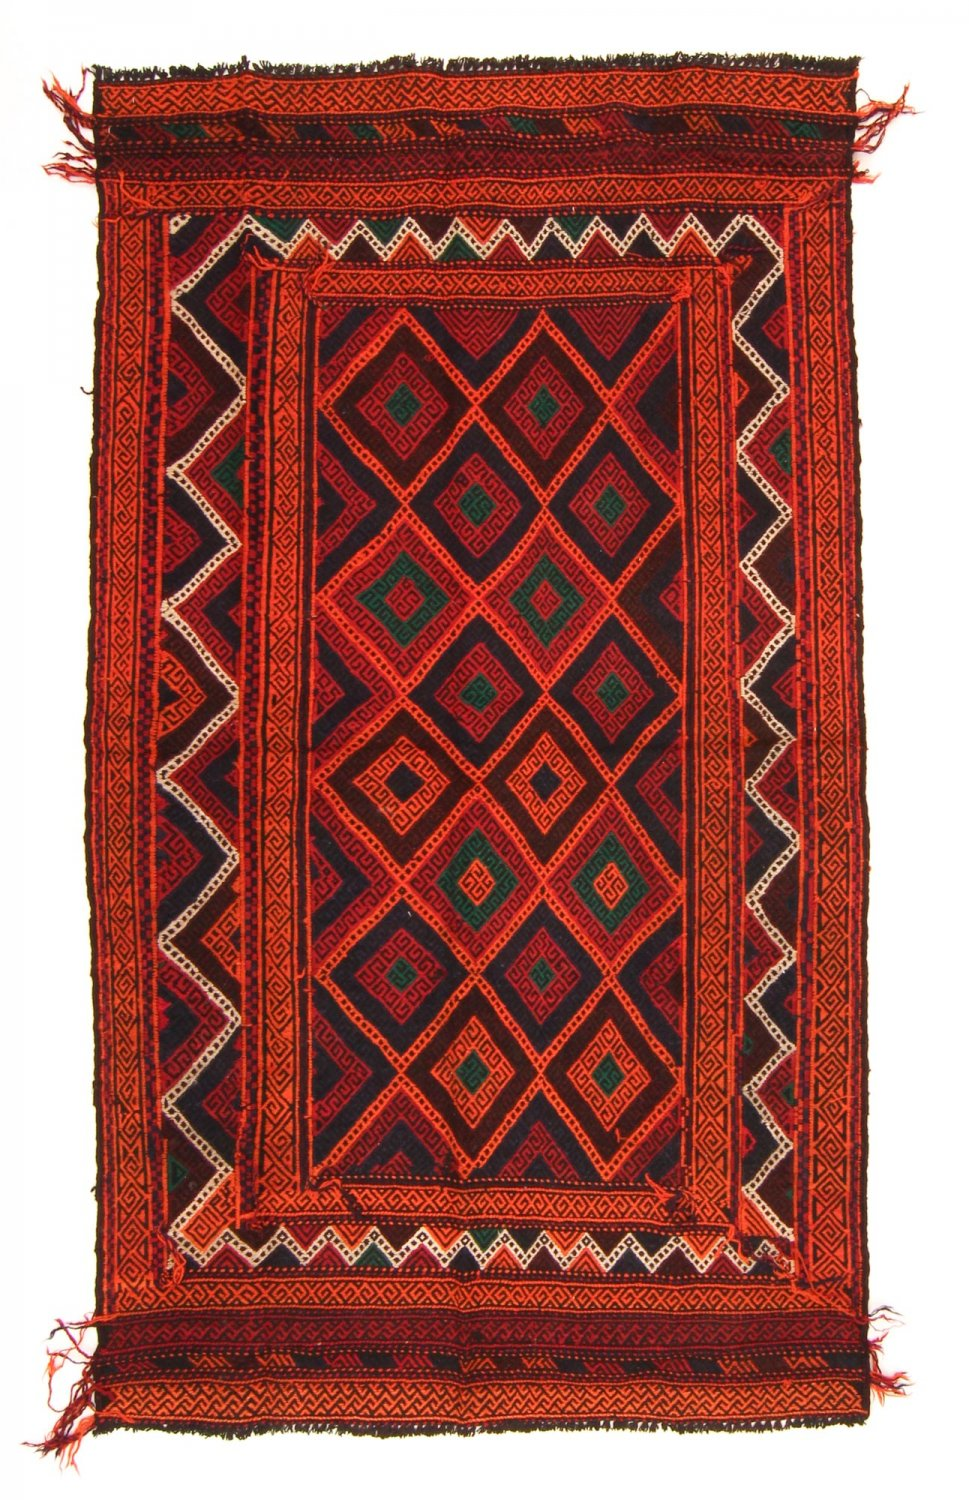 kilim rug afghan suzani 230 x 132 cm wool rugs. Black Bedroom Furniture Sets. Home Design Ideas